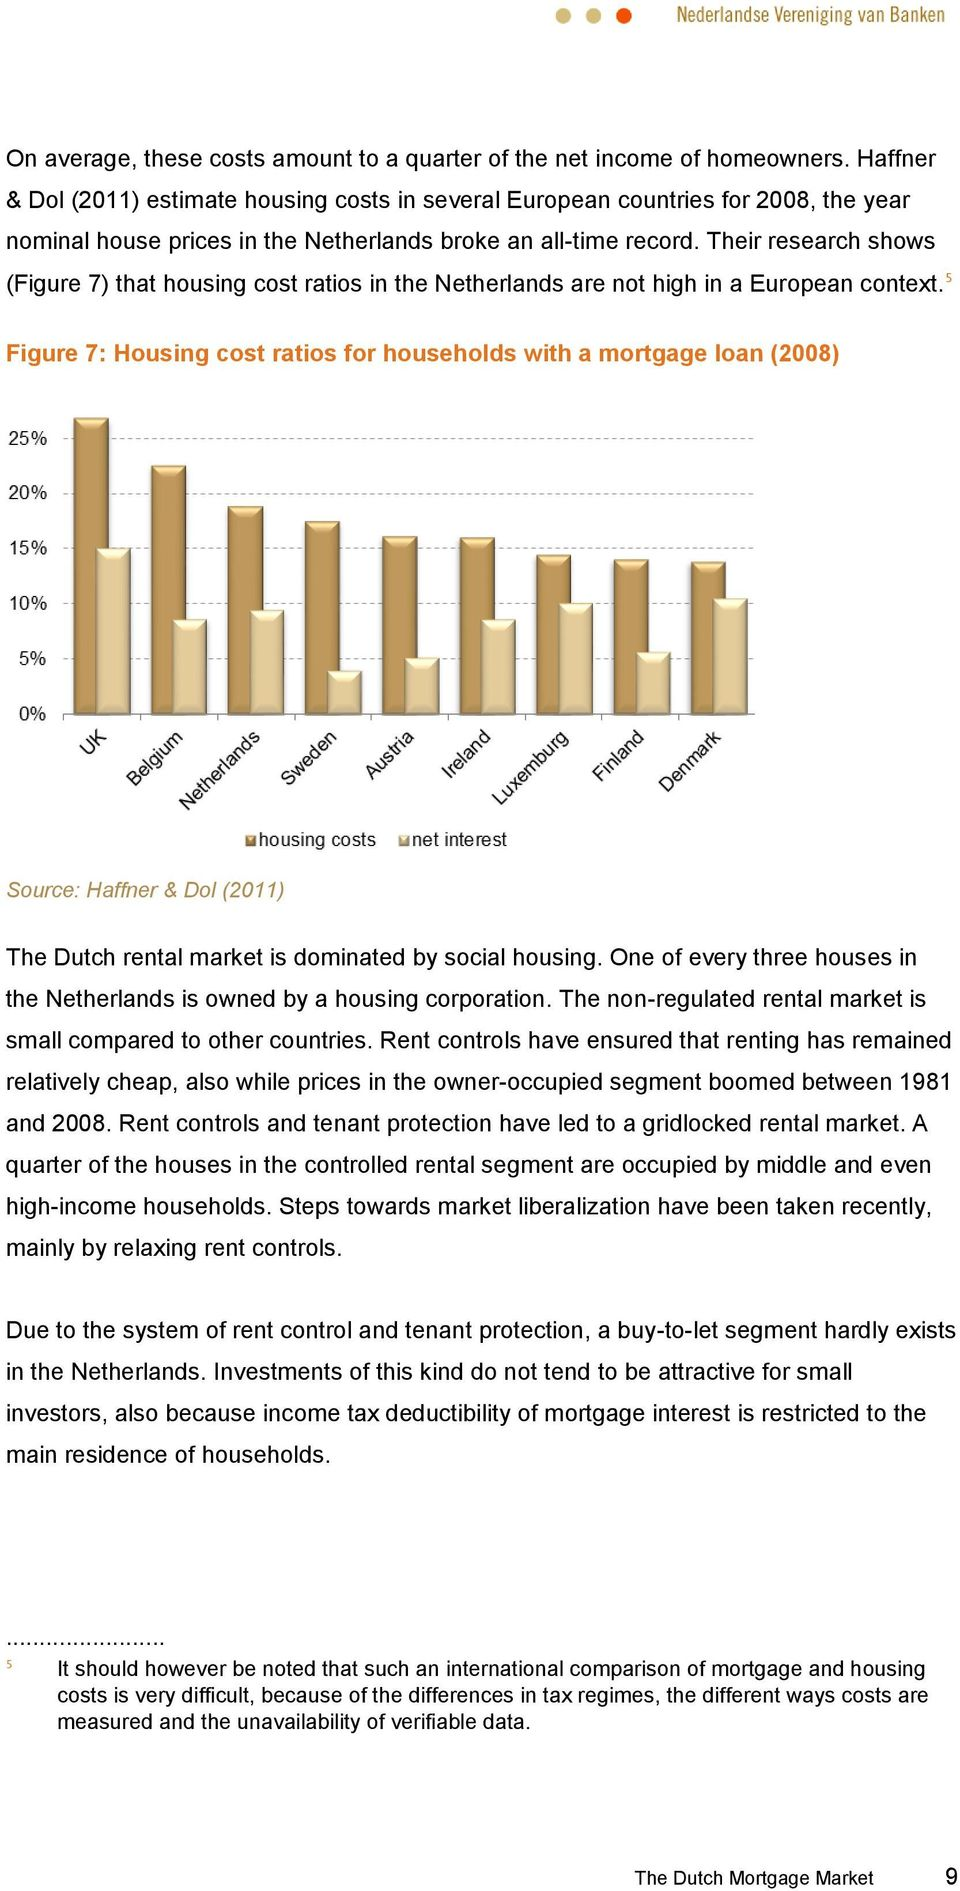 Their research shows (Figure 7) that housing cost ratios in the Netherlands are not high in a European context.